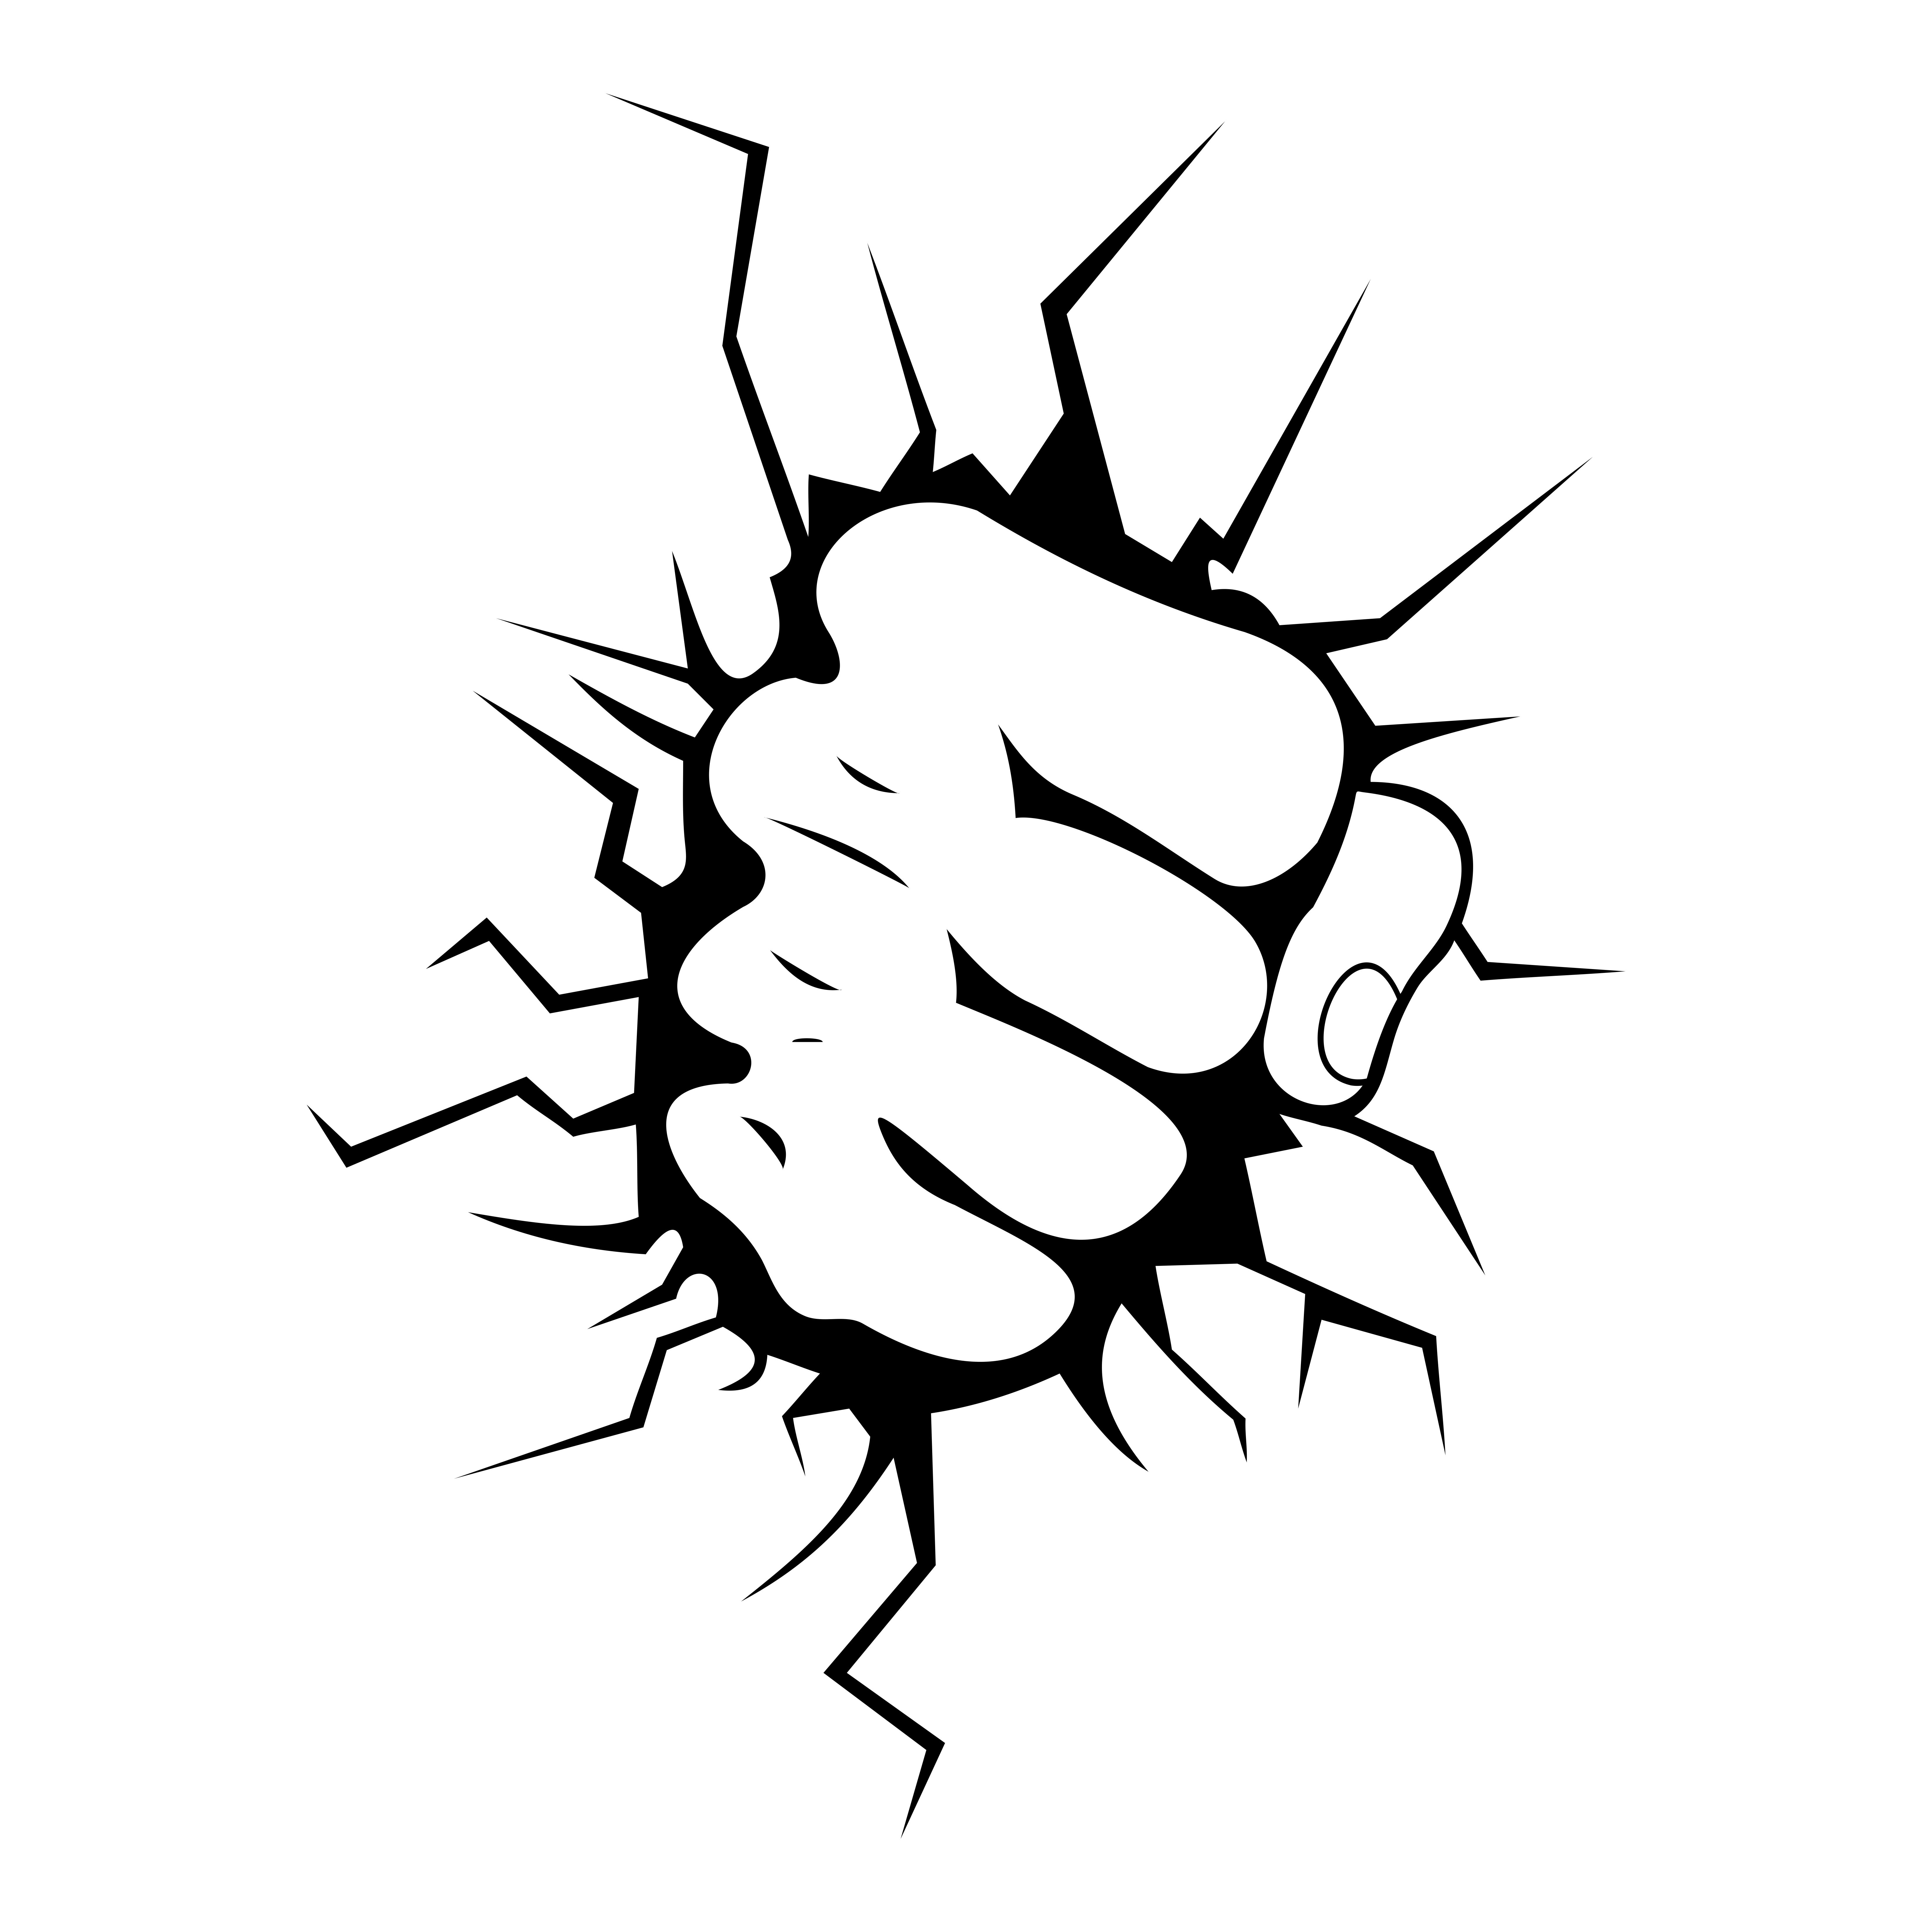 hulk hands coloring pages   Fist Vinyl Decal, Graphic, Bumper Sticker.